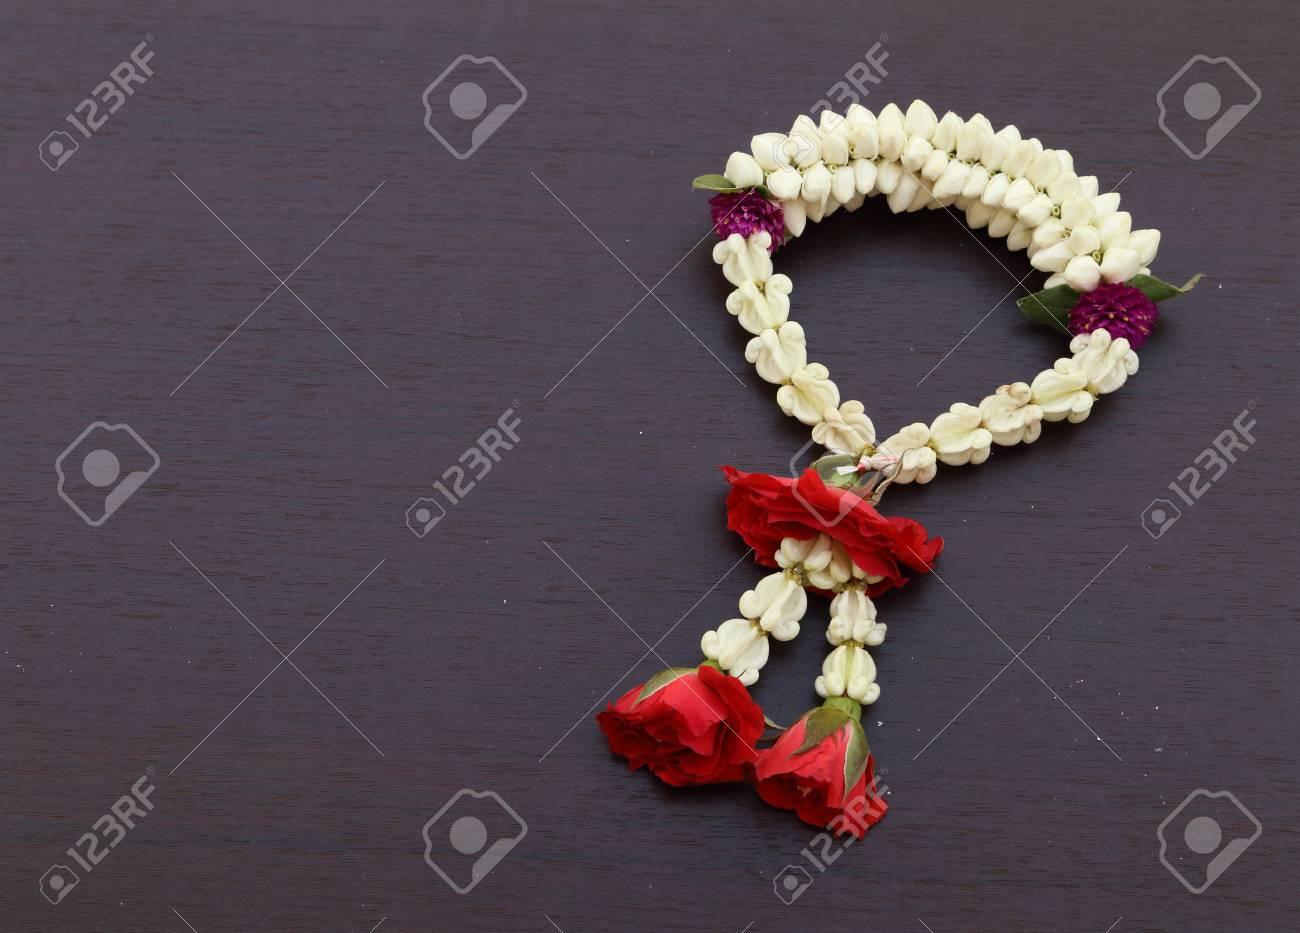 Garland Of Jasmine Flower On Wood Background Blank For Text Stock